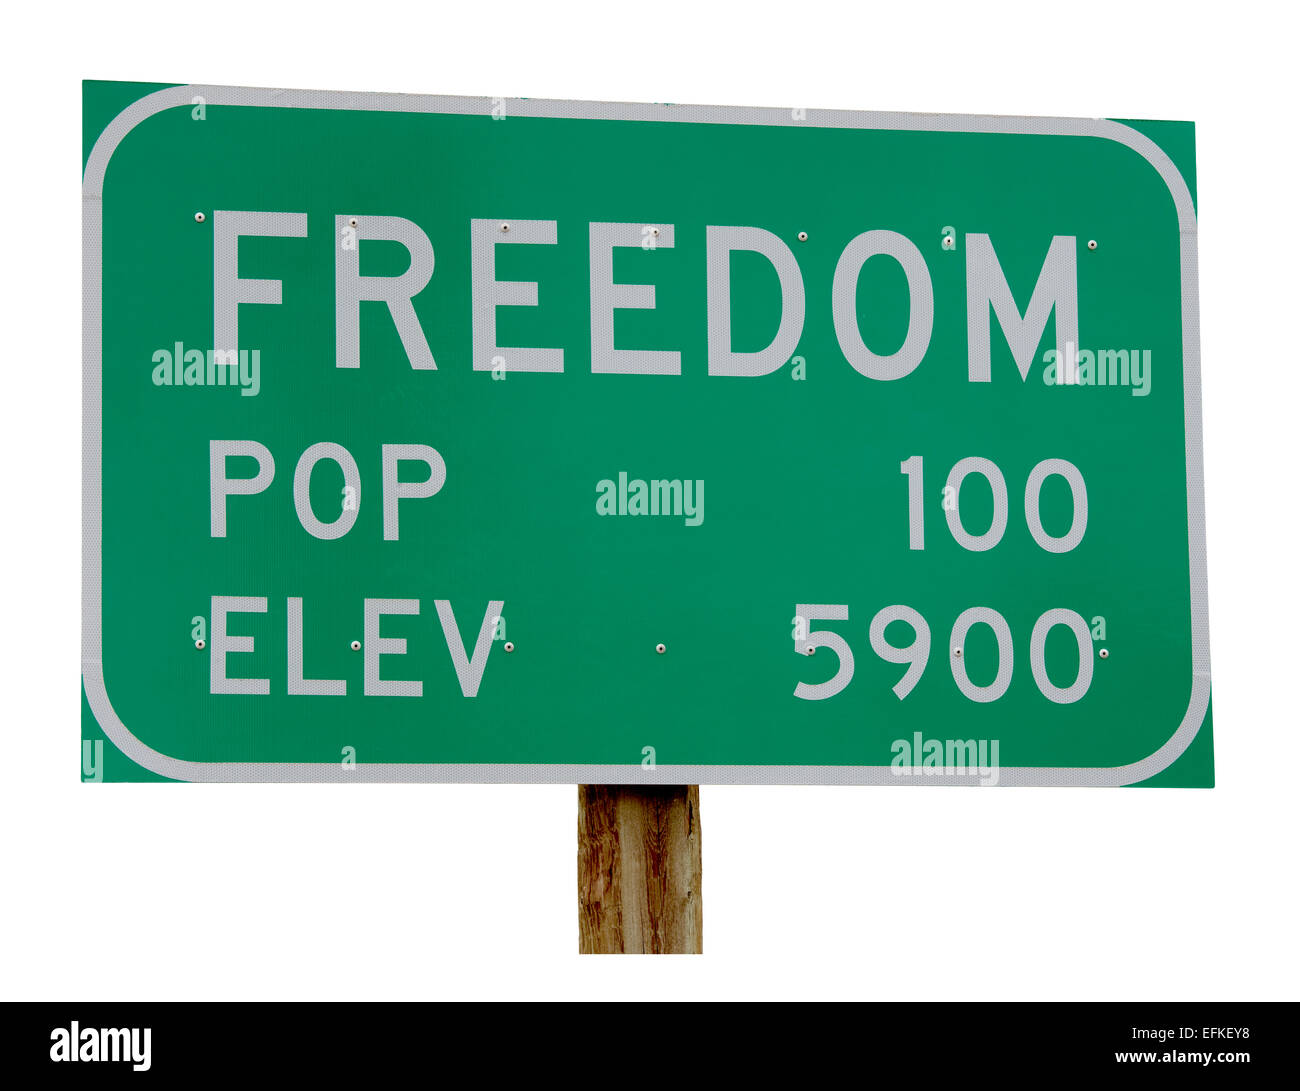 Town Sign Freedom Wyoming Idaho border town. Population 100. Elevation 5900. cut out cutout isolated on white background - Stock Image